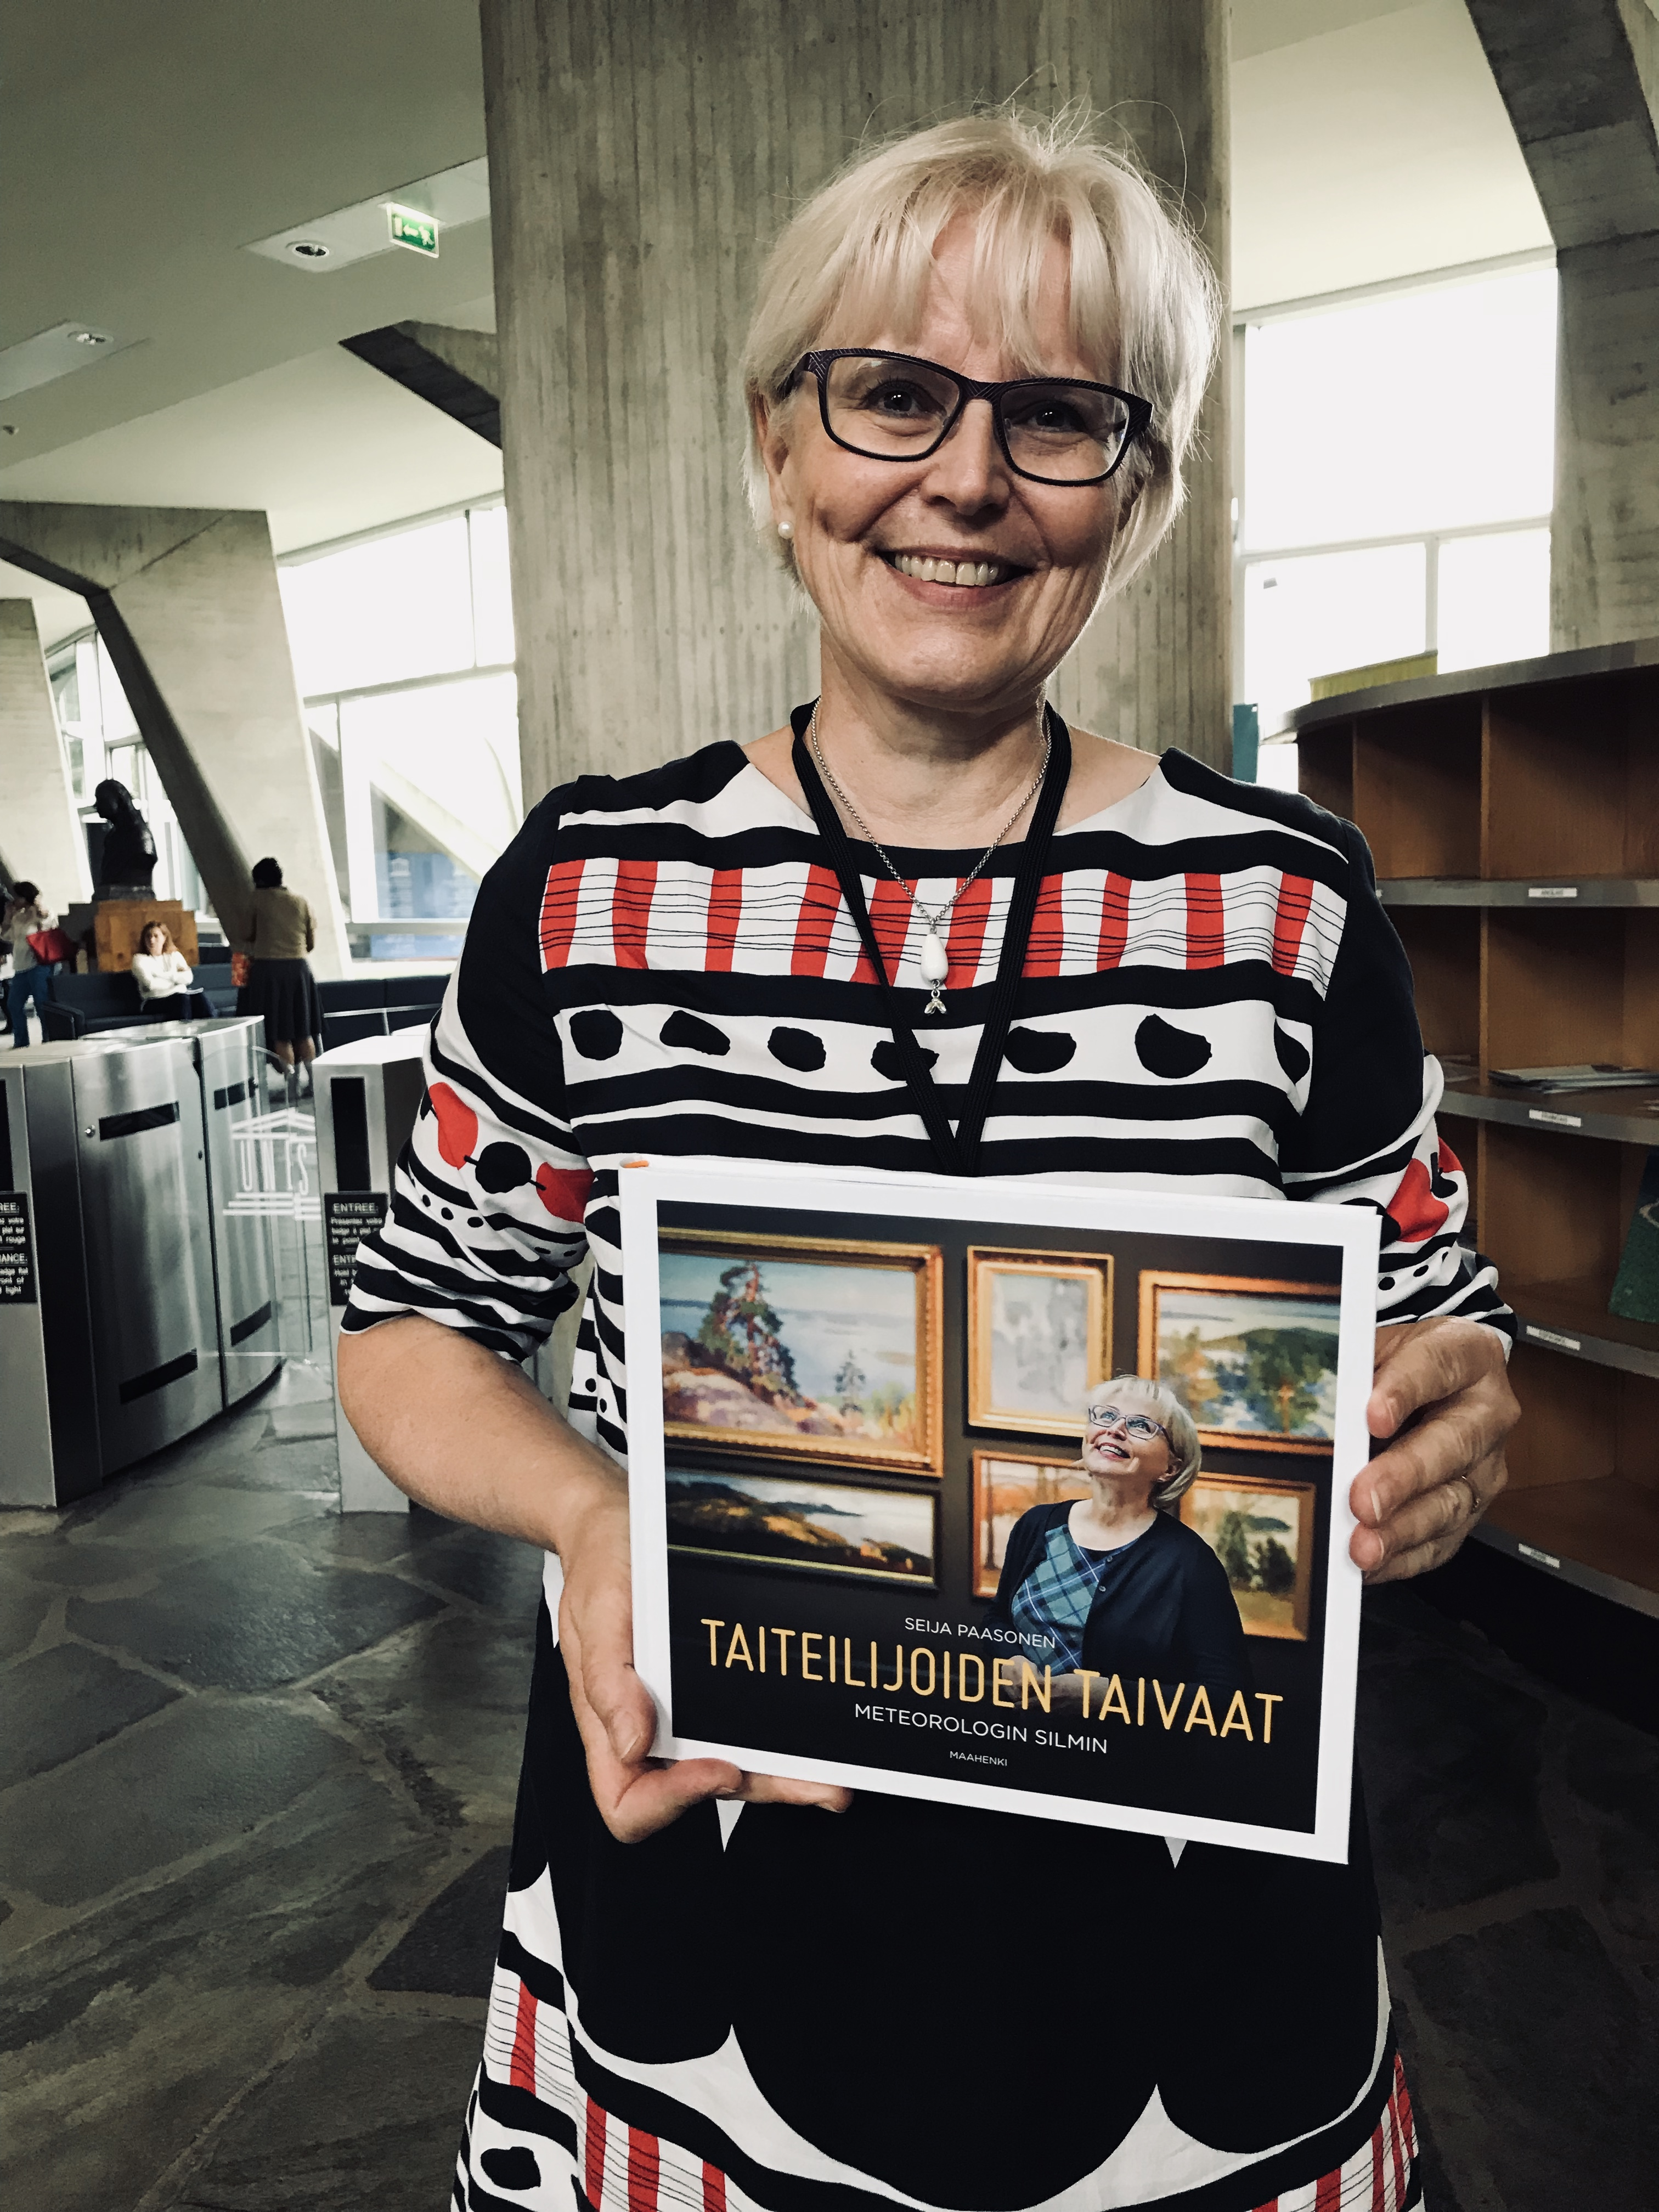 Seija Paasonen from Finland holding her new book